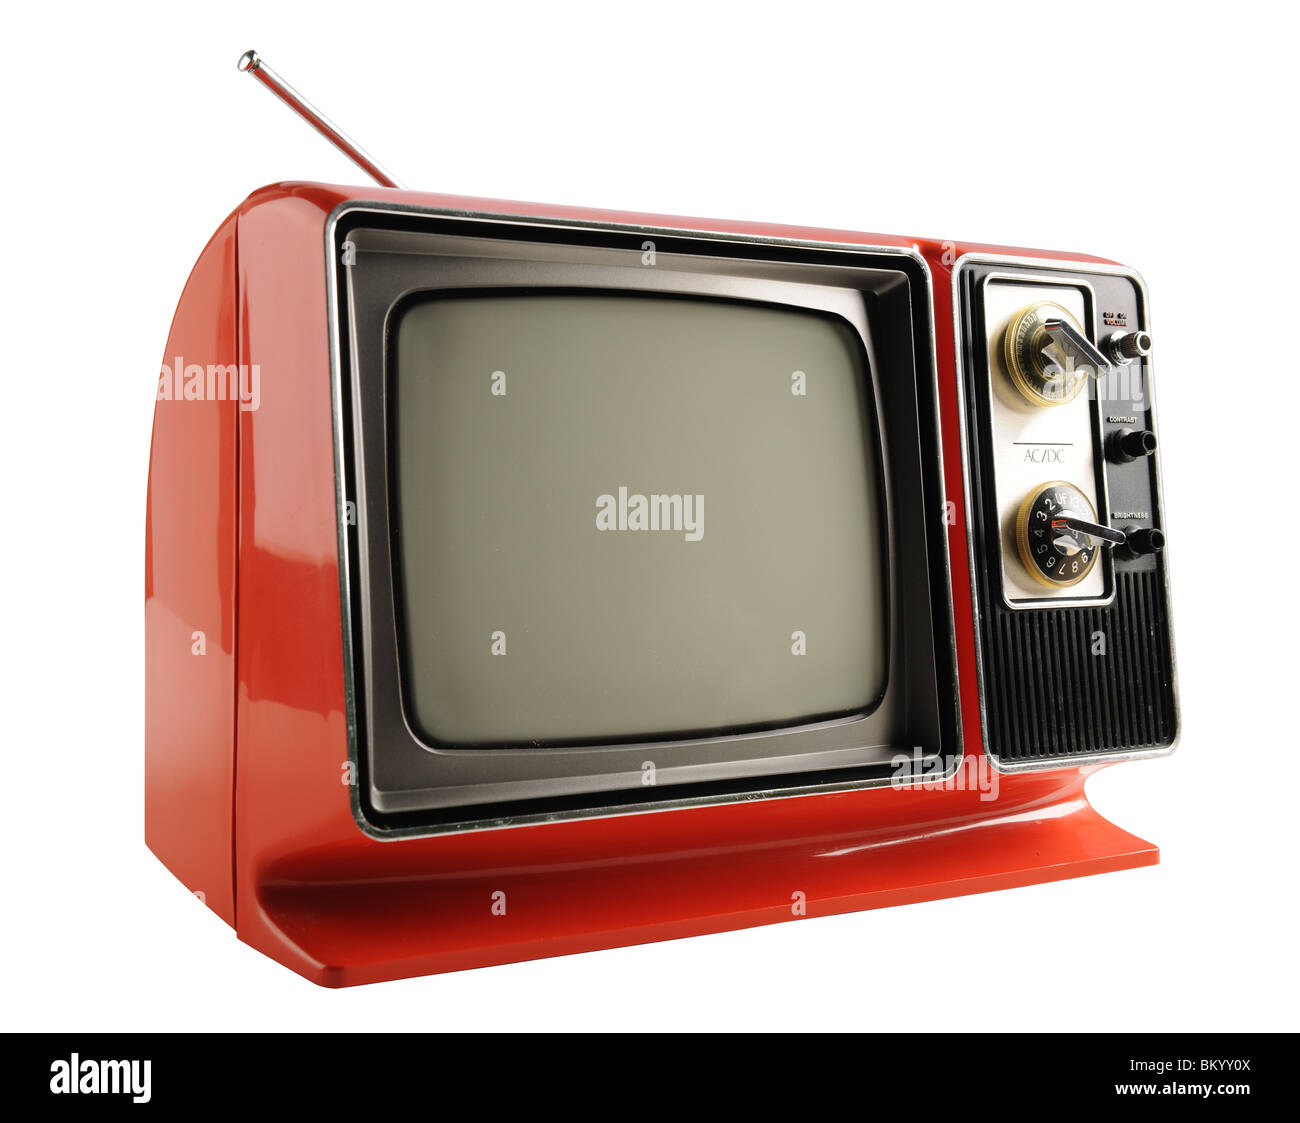 Orange vintage television from the 1970s - With clipping path - Stock Image